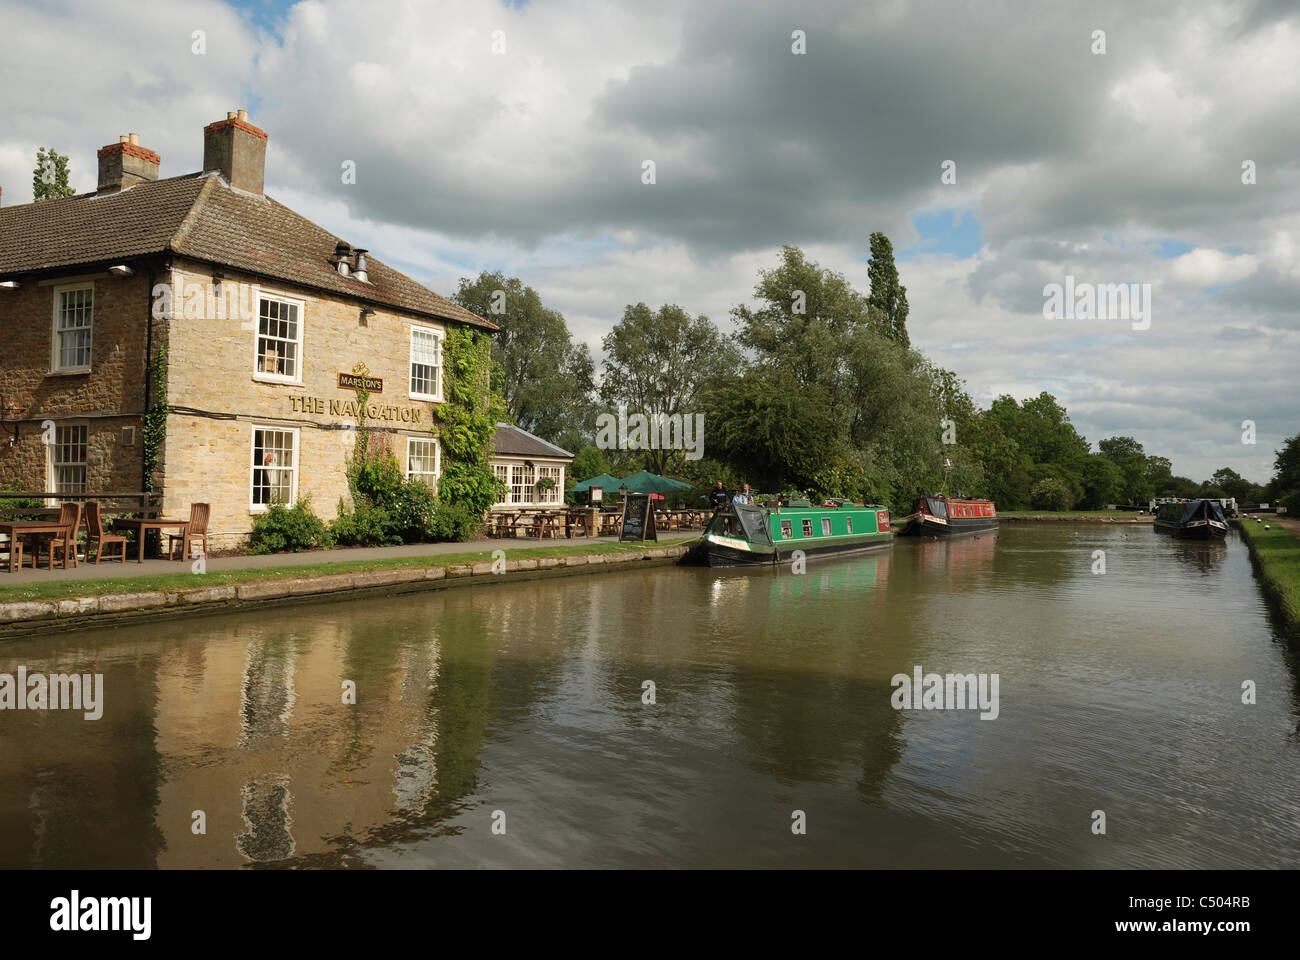 The Navigation public house by the Grand Union Canal at Stoke Bruerne, Northamptonshire, England. - Stock Image